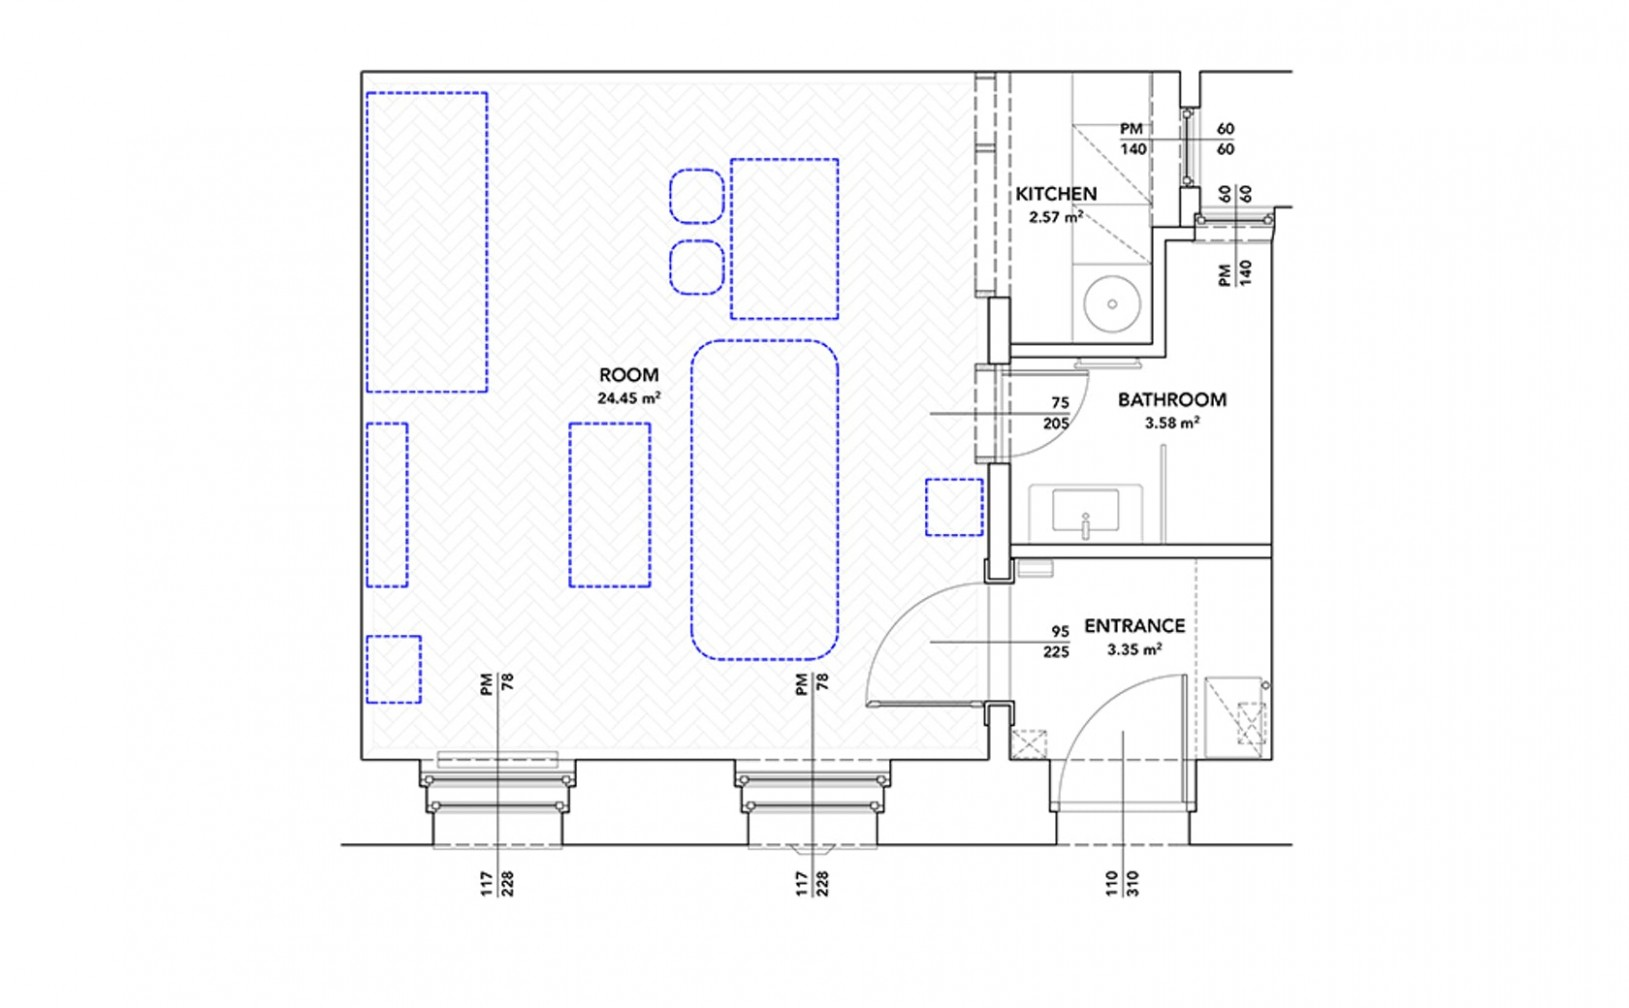 Architectural Drawings: 8 Clever Plans for Tiny Apartments  - Apartment Design Drawing